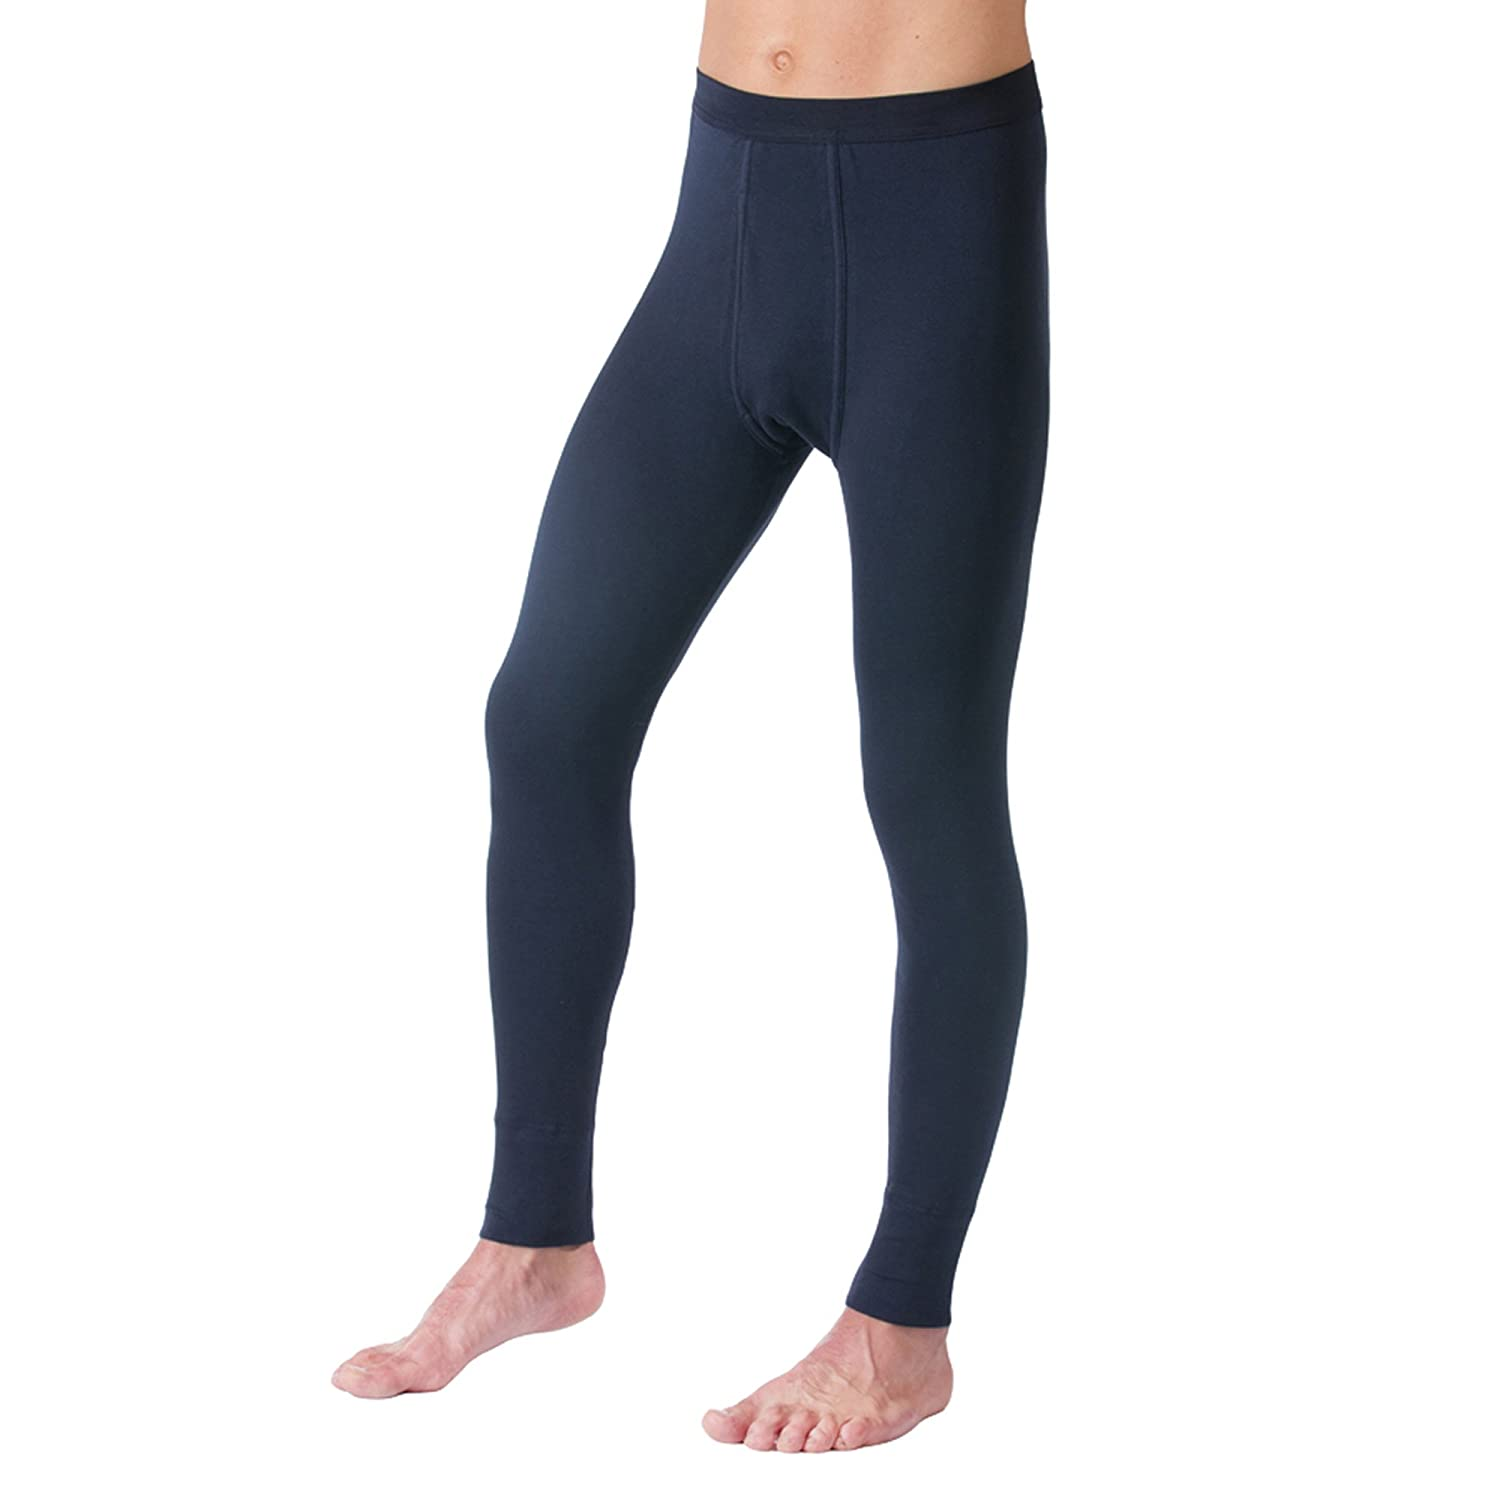 HERMKO 3540 - Pack of 3 Pairs Mens Long Johns underwear made of 100% cotton